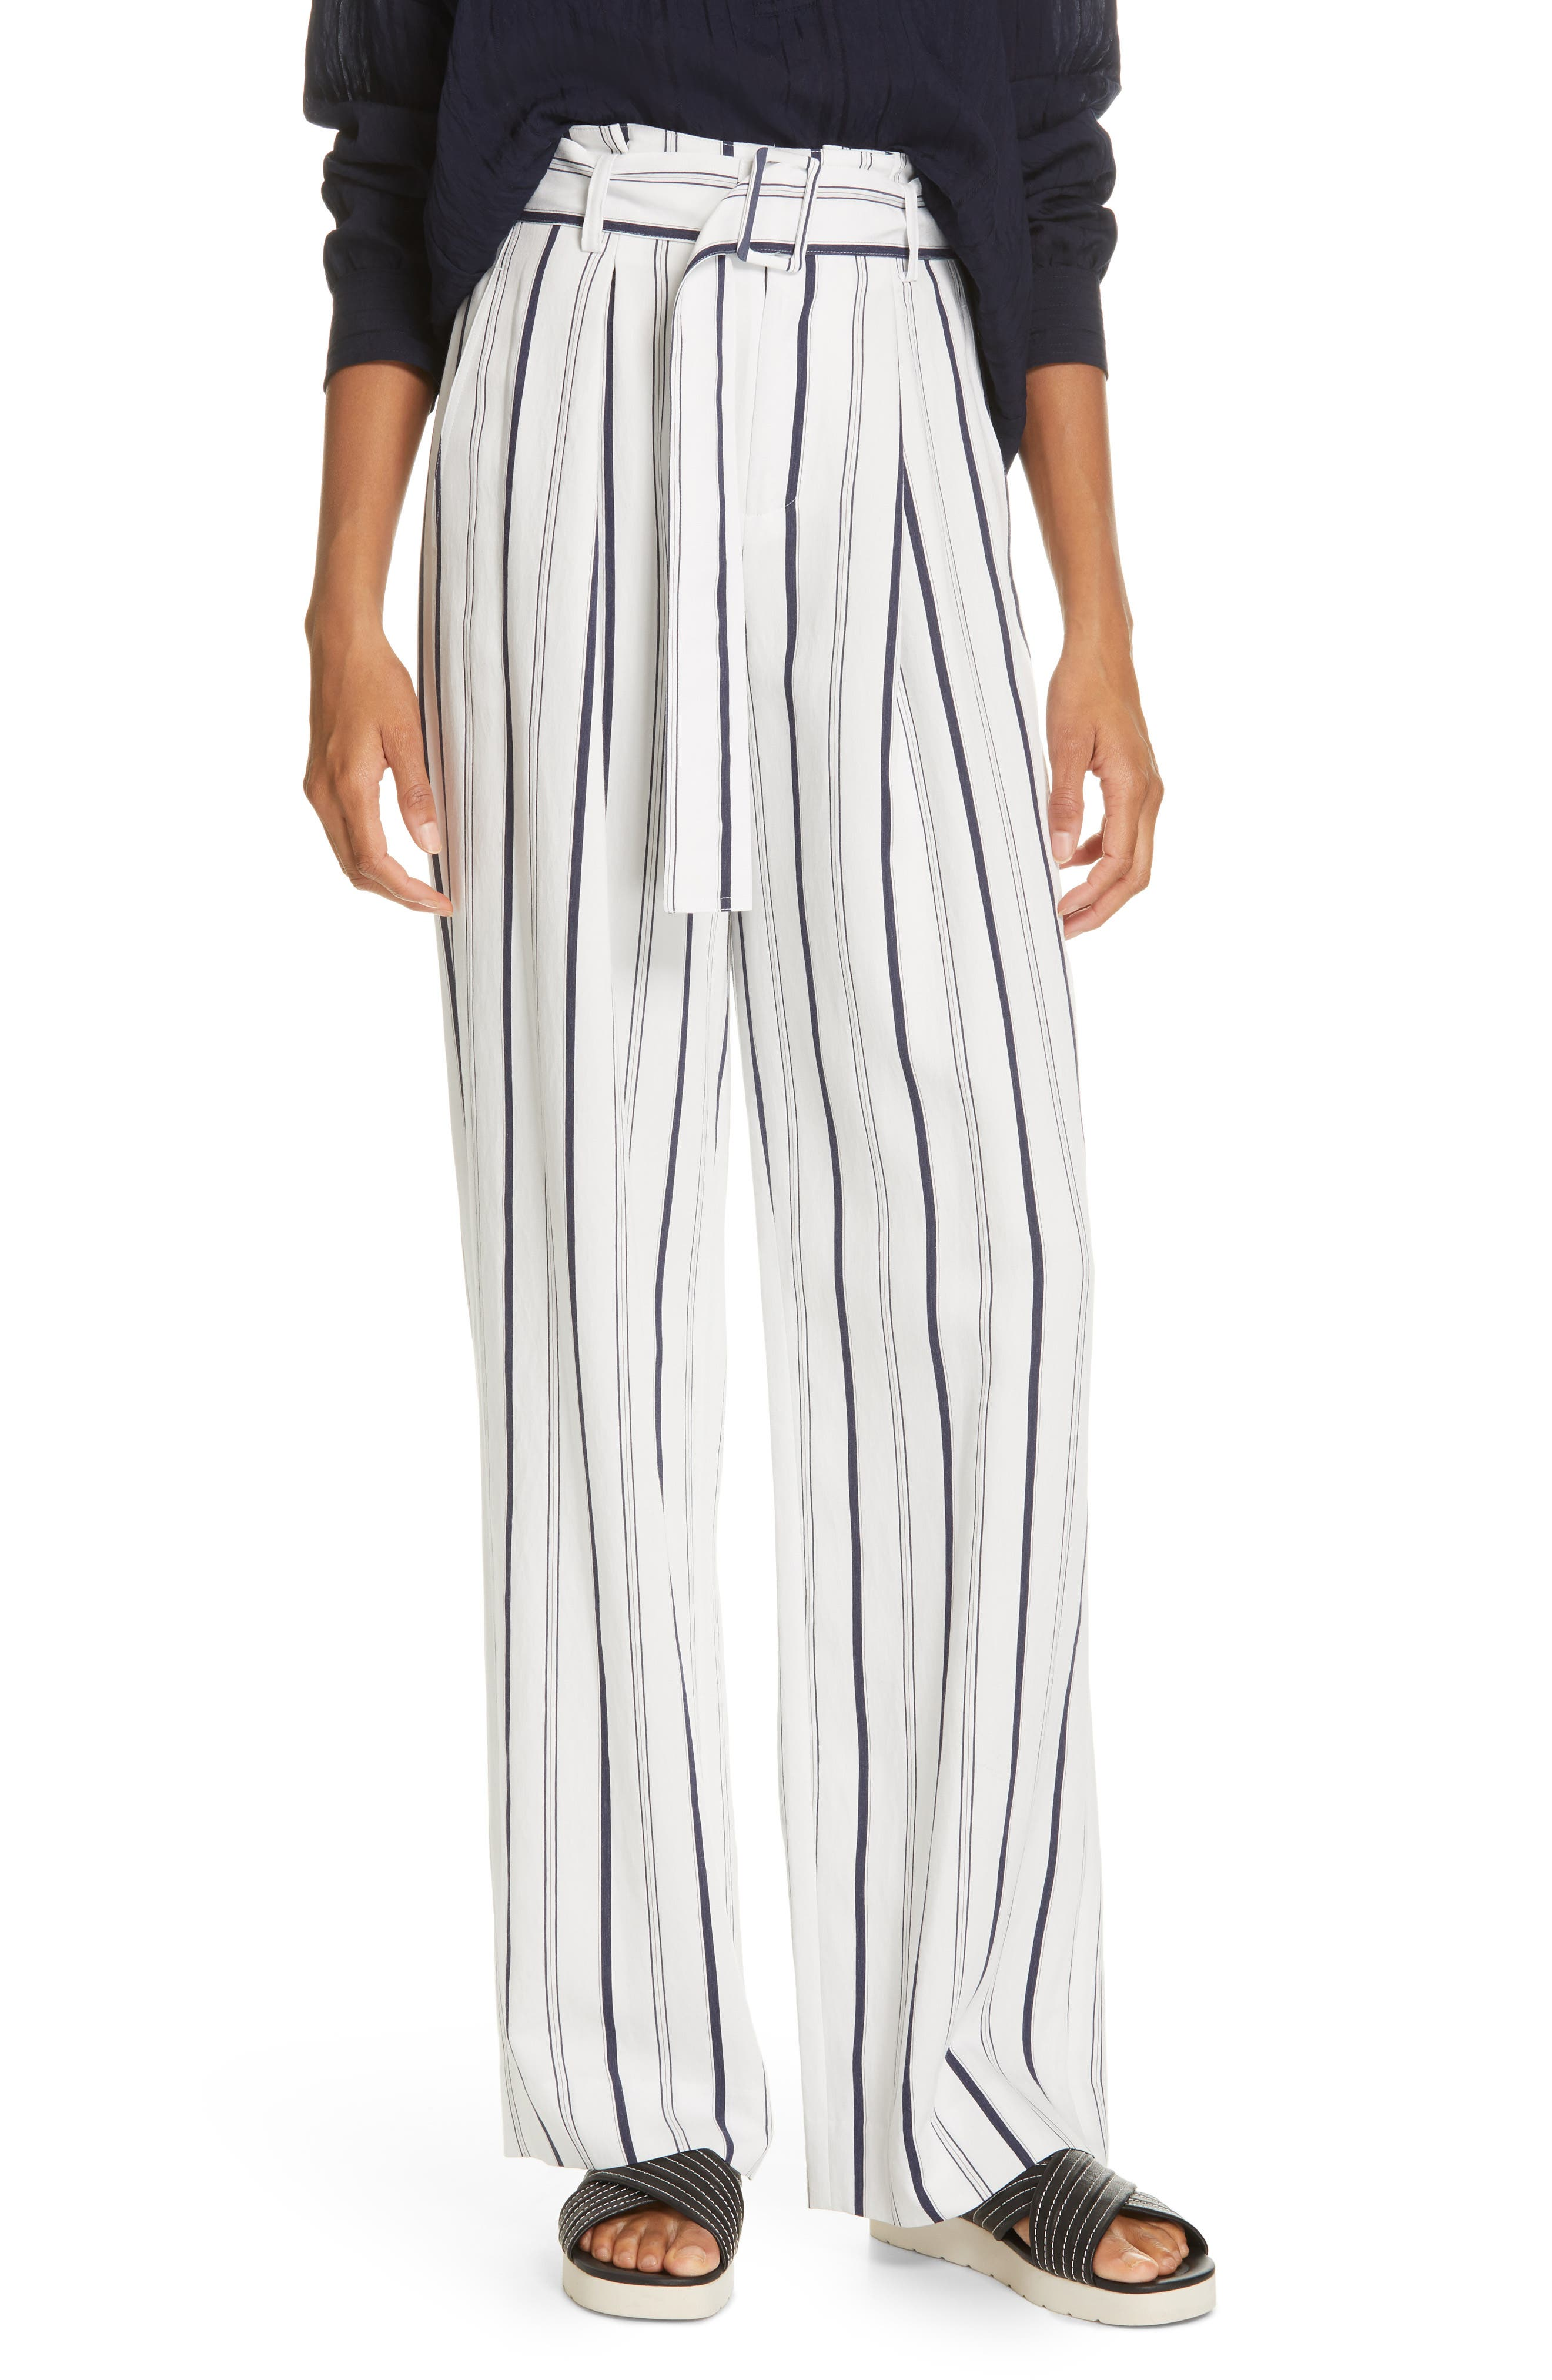 VINCE, Belted Stripe Pants, Main thumbnail 1, color, OFF WHITE